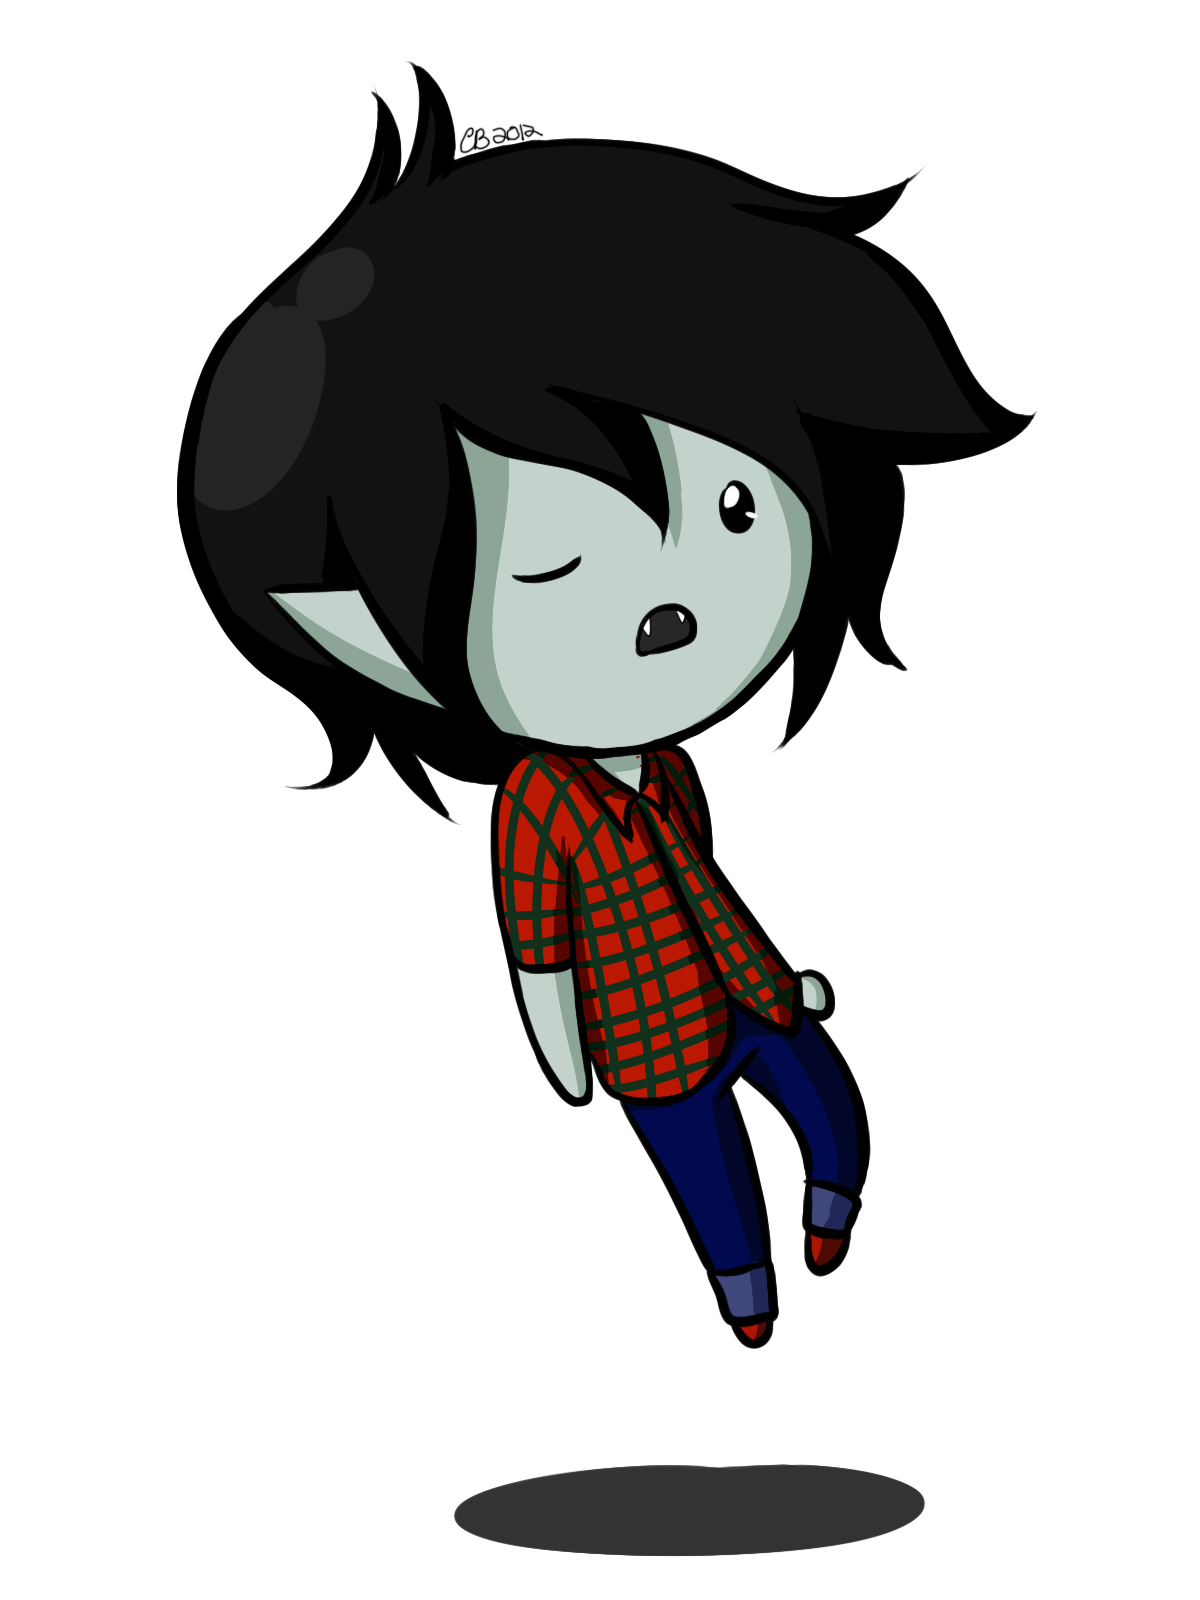 Chibi Marshall Lee by Chiherah